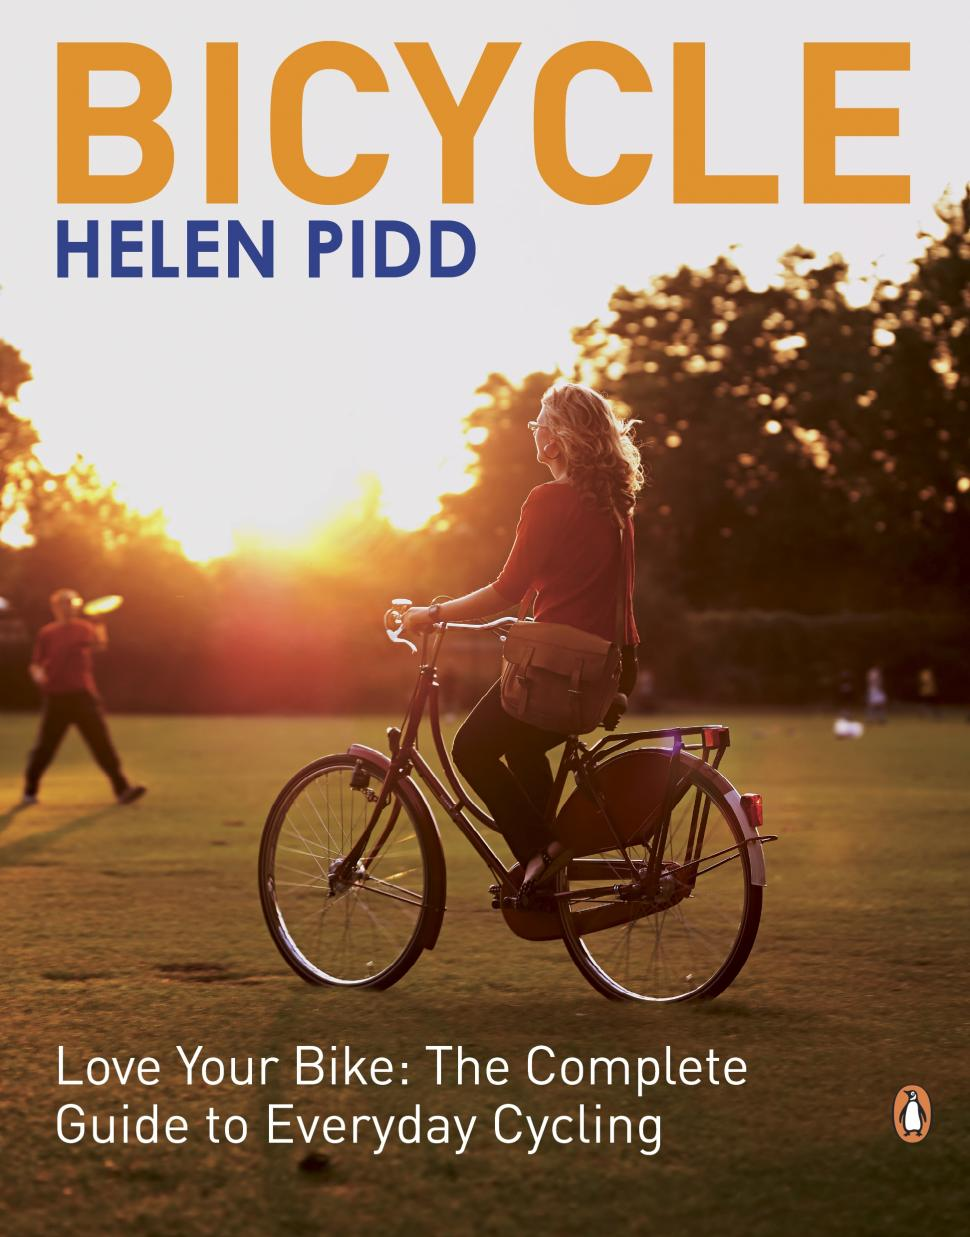 Bicycle - Helen Pidd